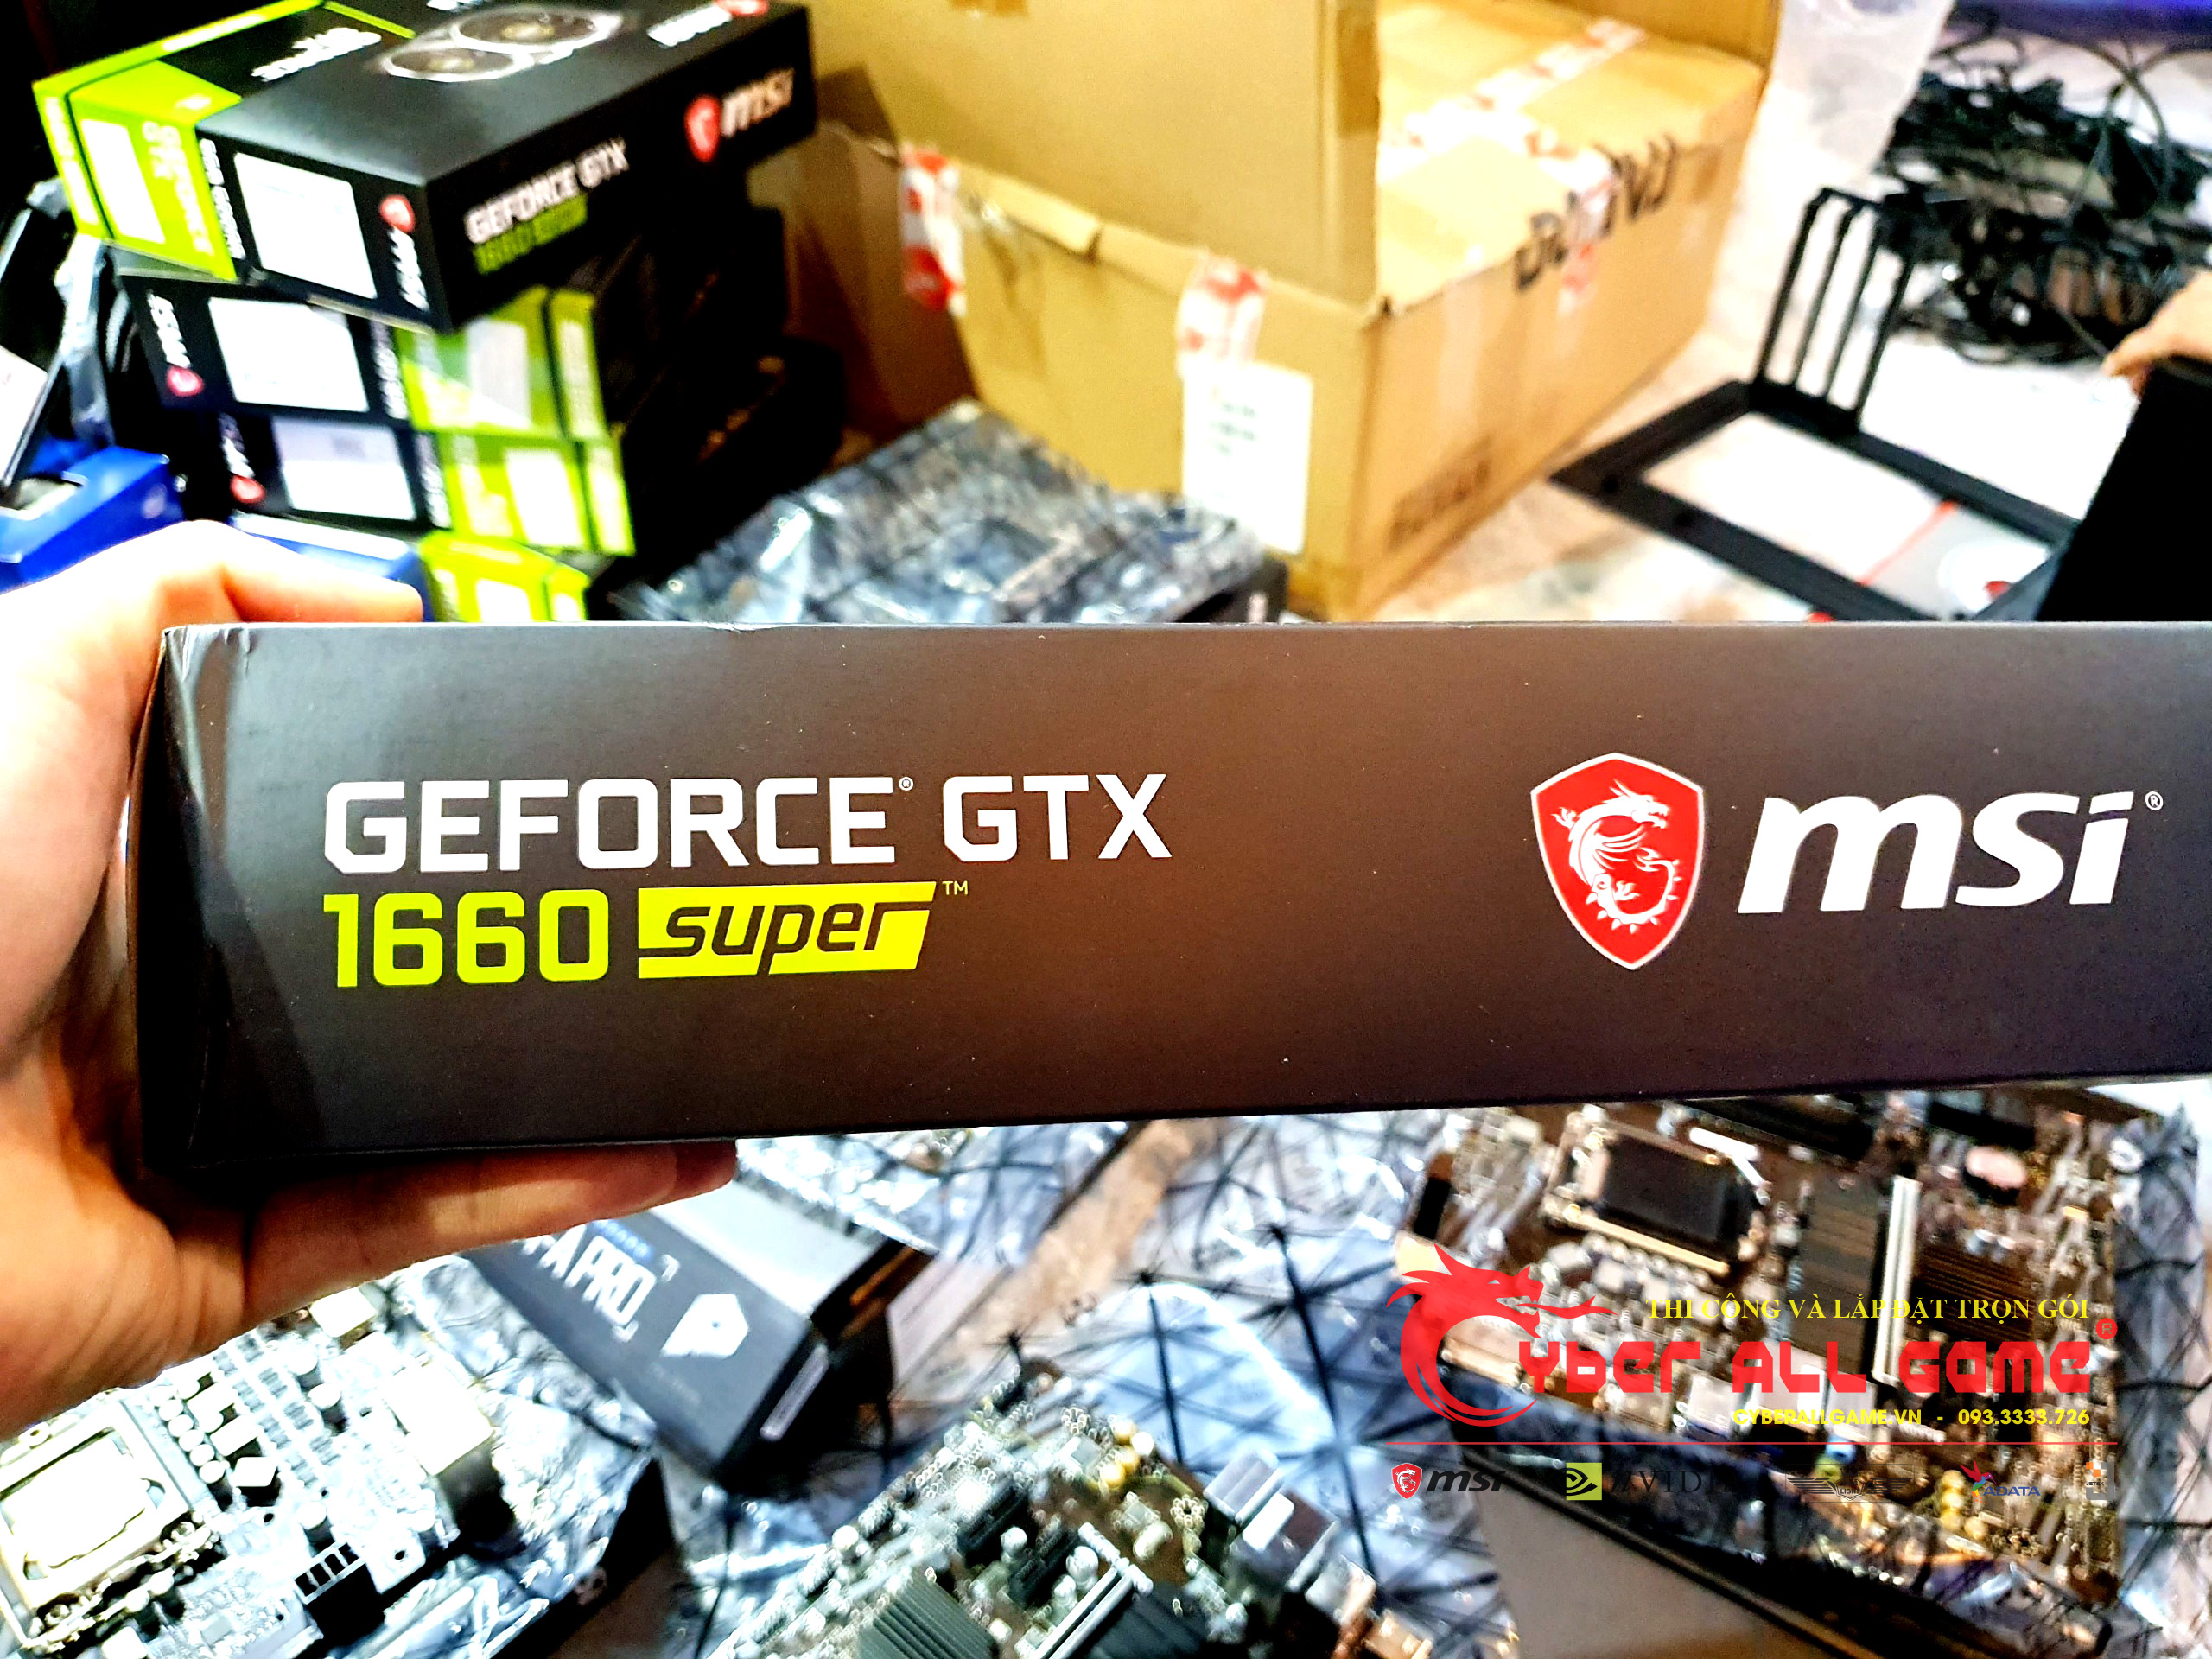 VGA MSI GTX 1660 Super 6GB